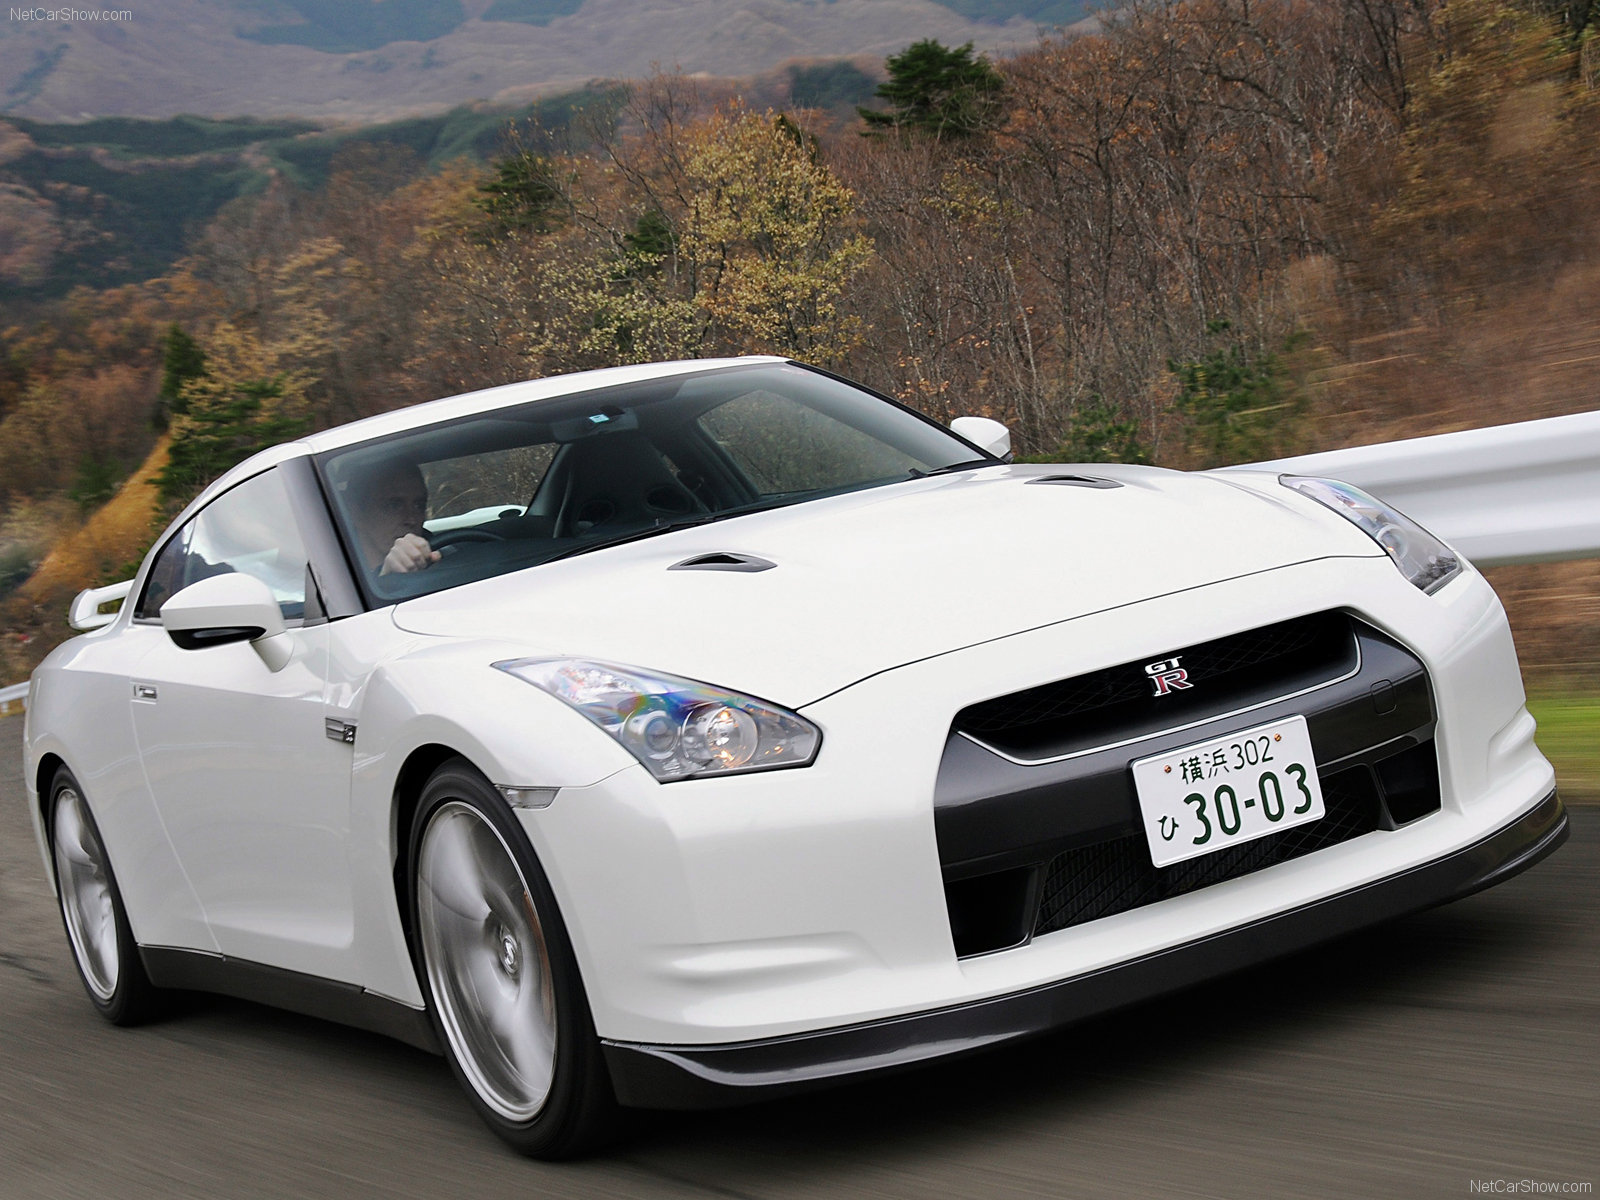 Nissan gt r wallpapers car wallpapers - Nissan skyline background ...